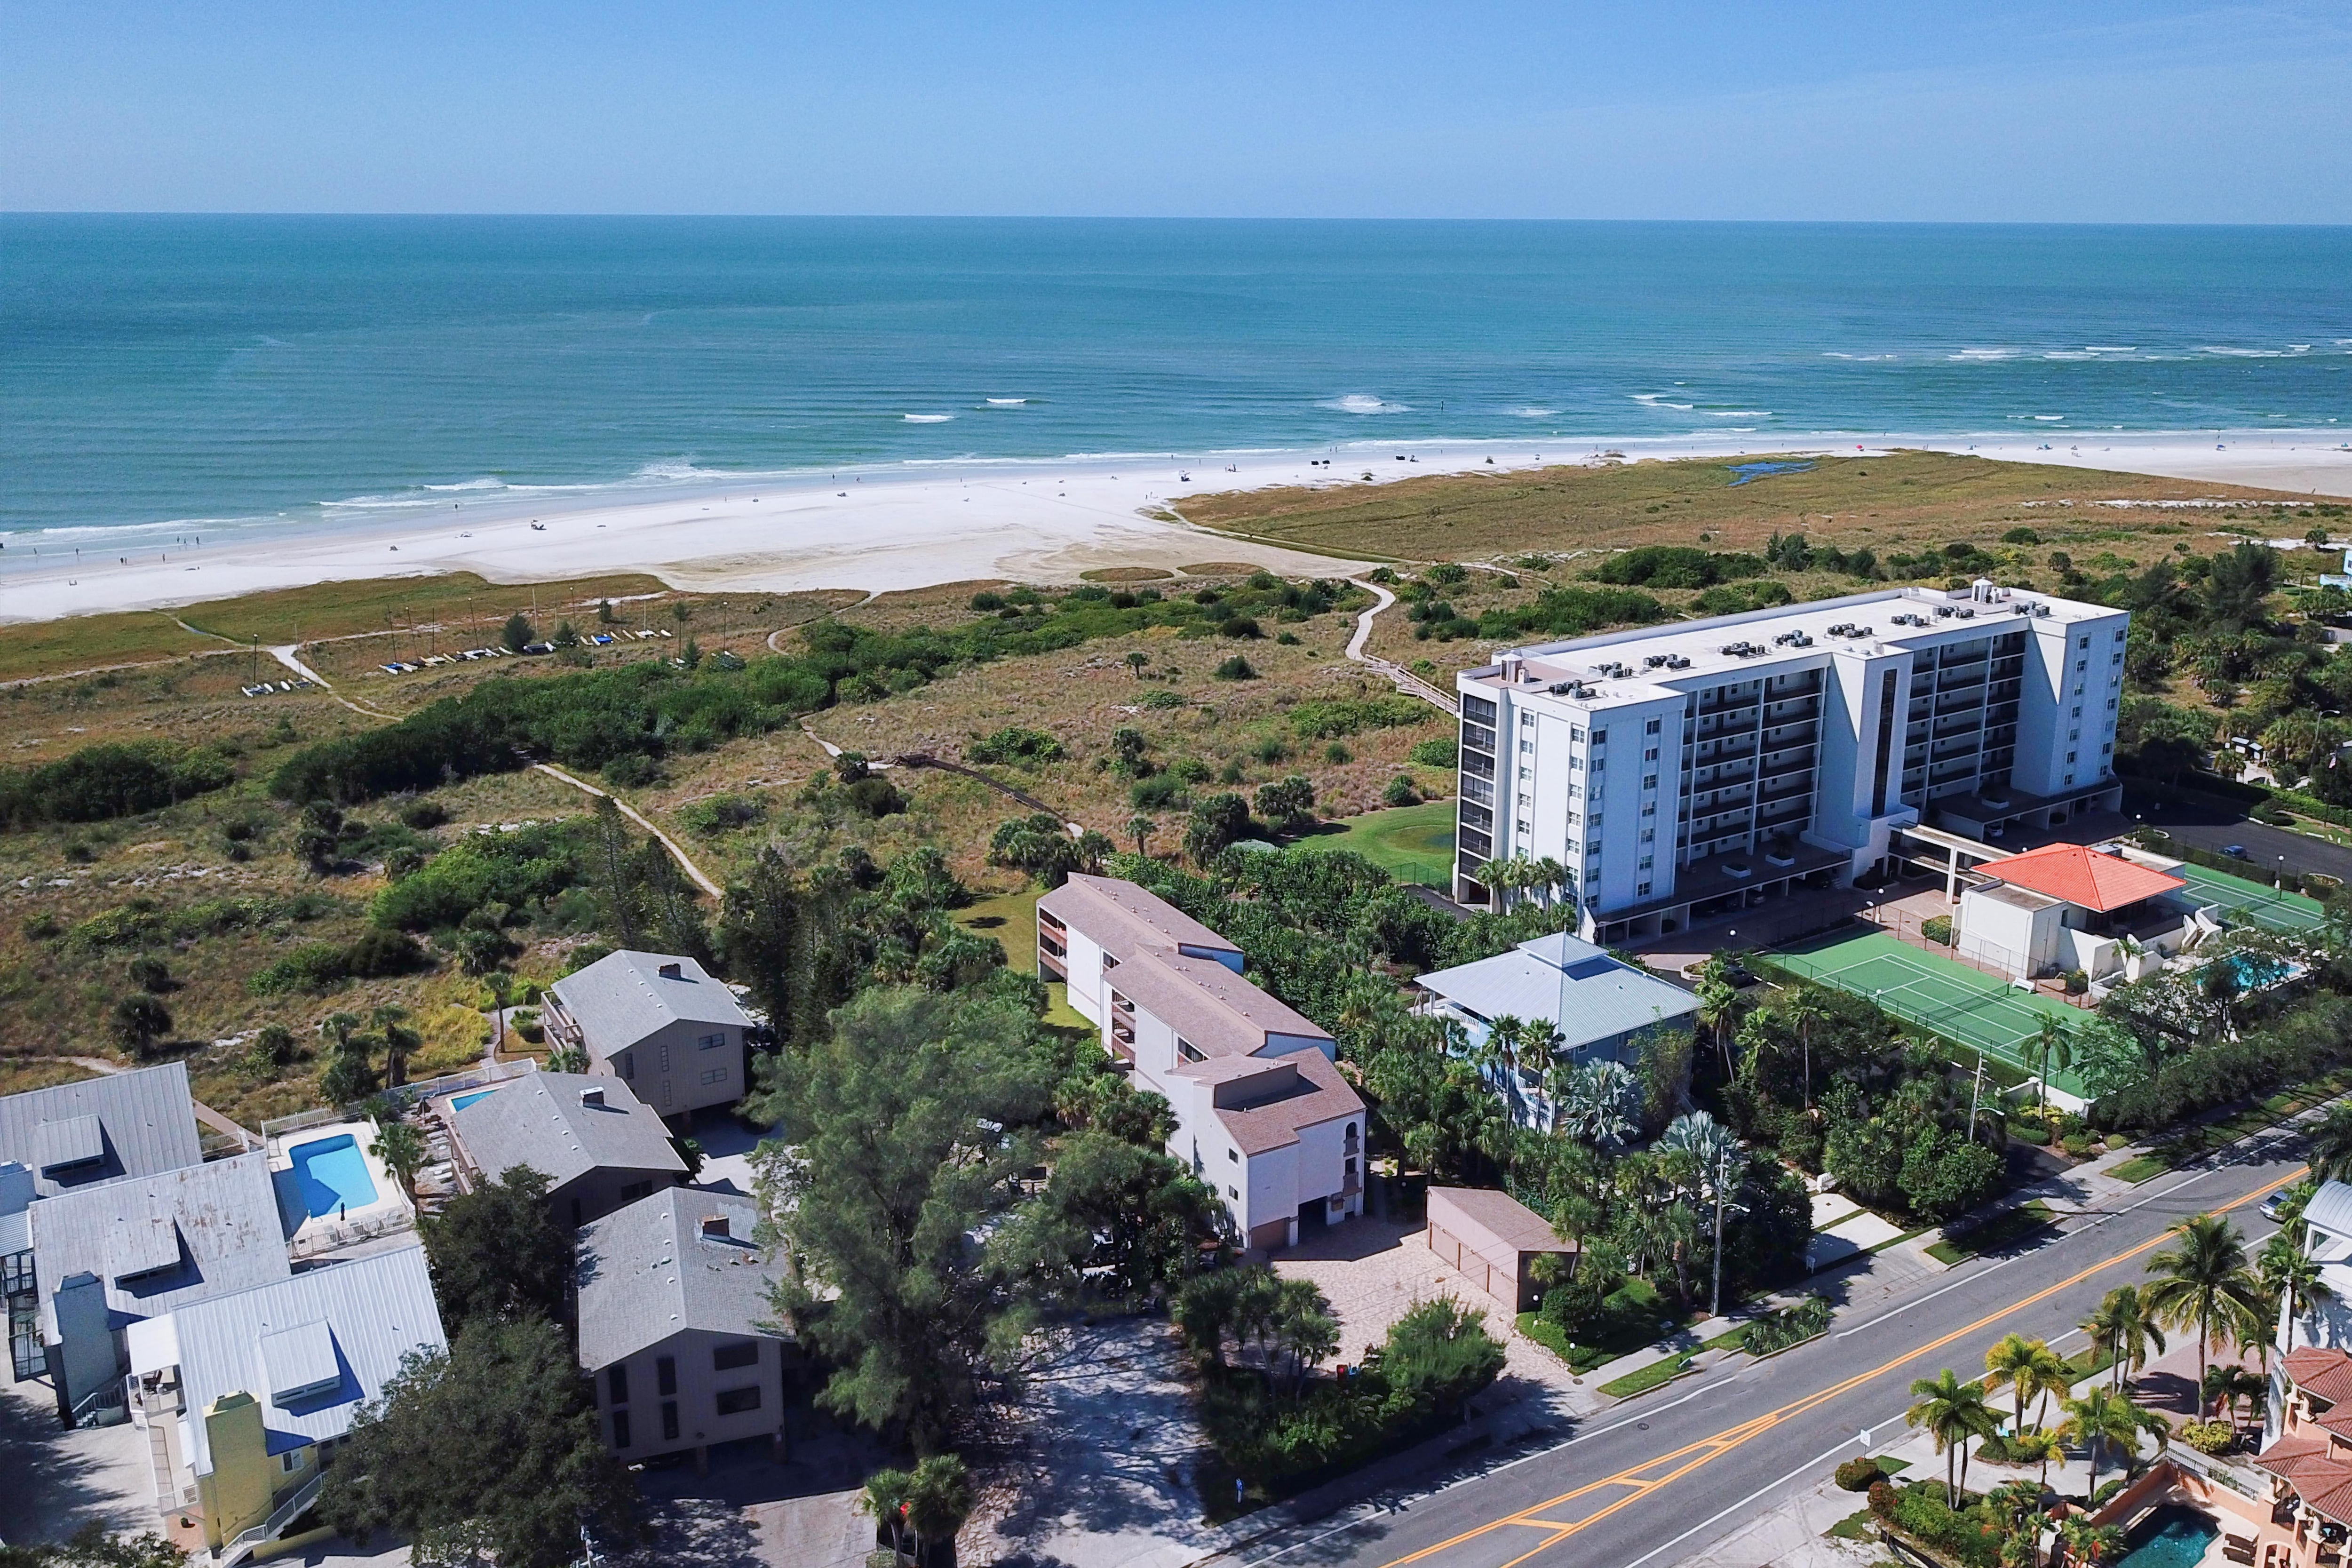 Your rental (located in the center of the photo) offers a prime location with easy beach access.